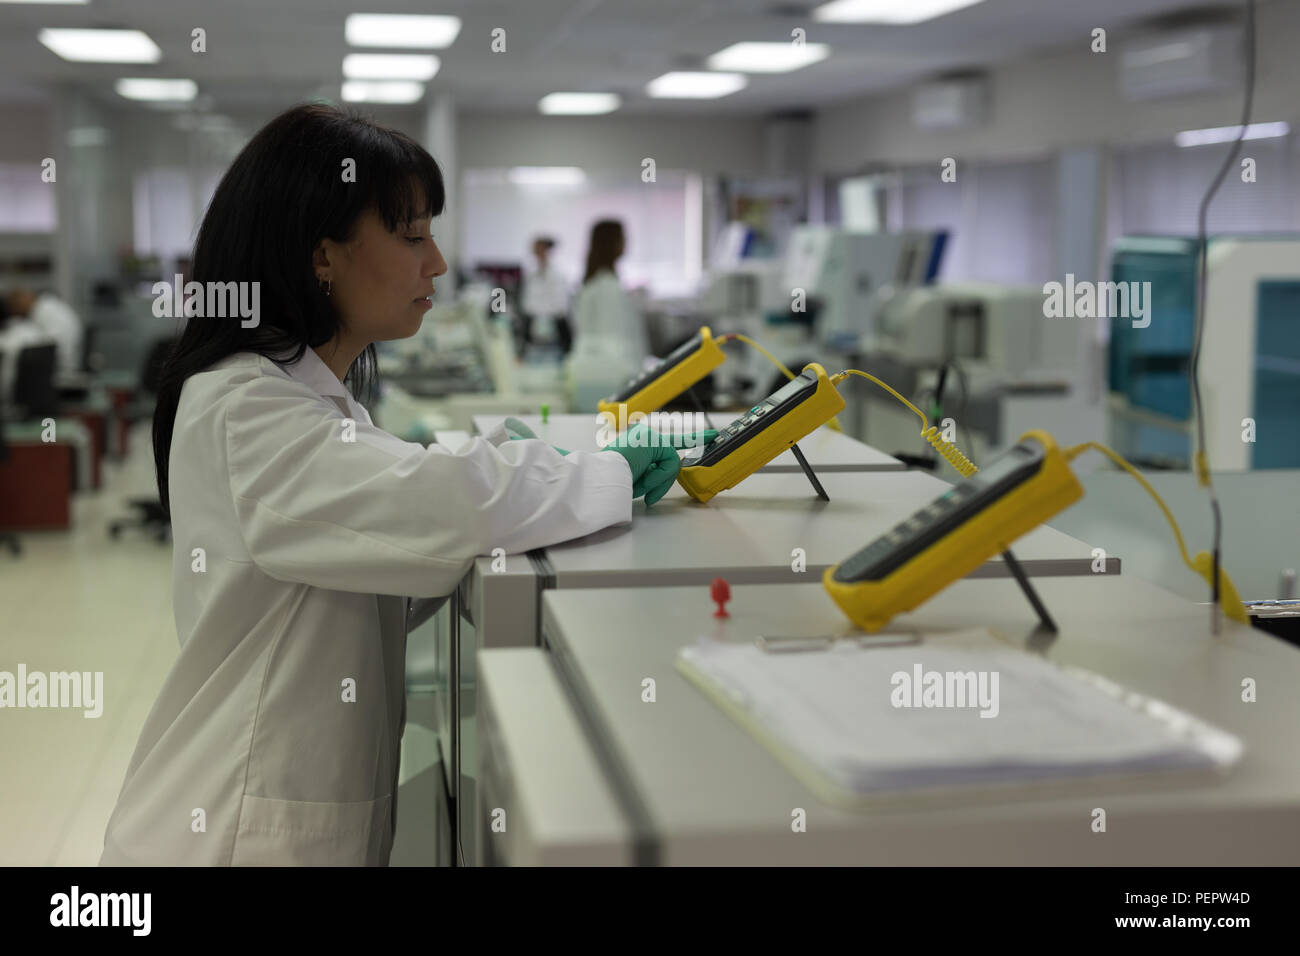 Laboratory technician using electronic device - Stock Image